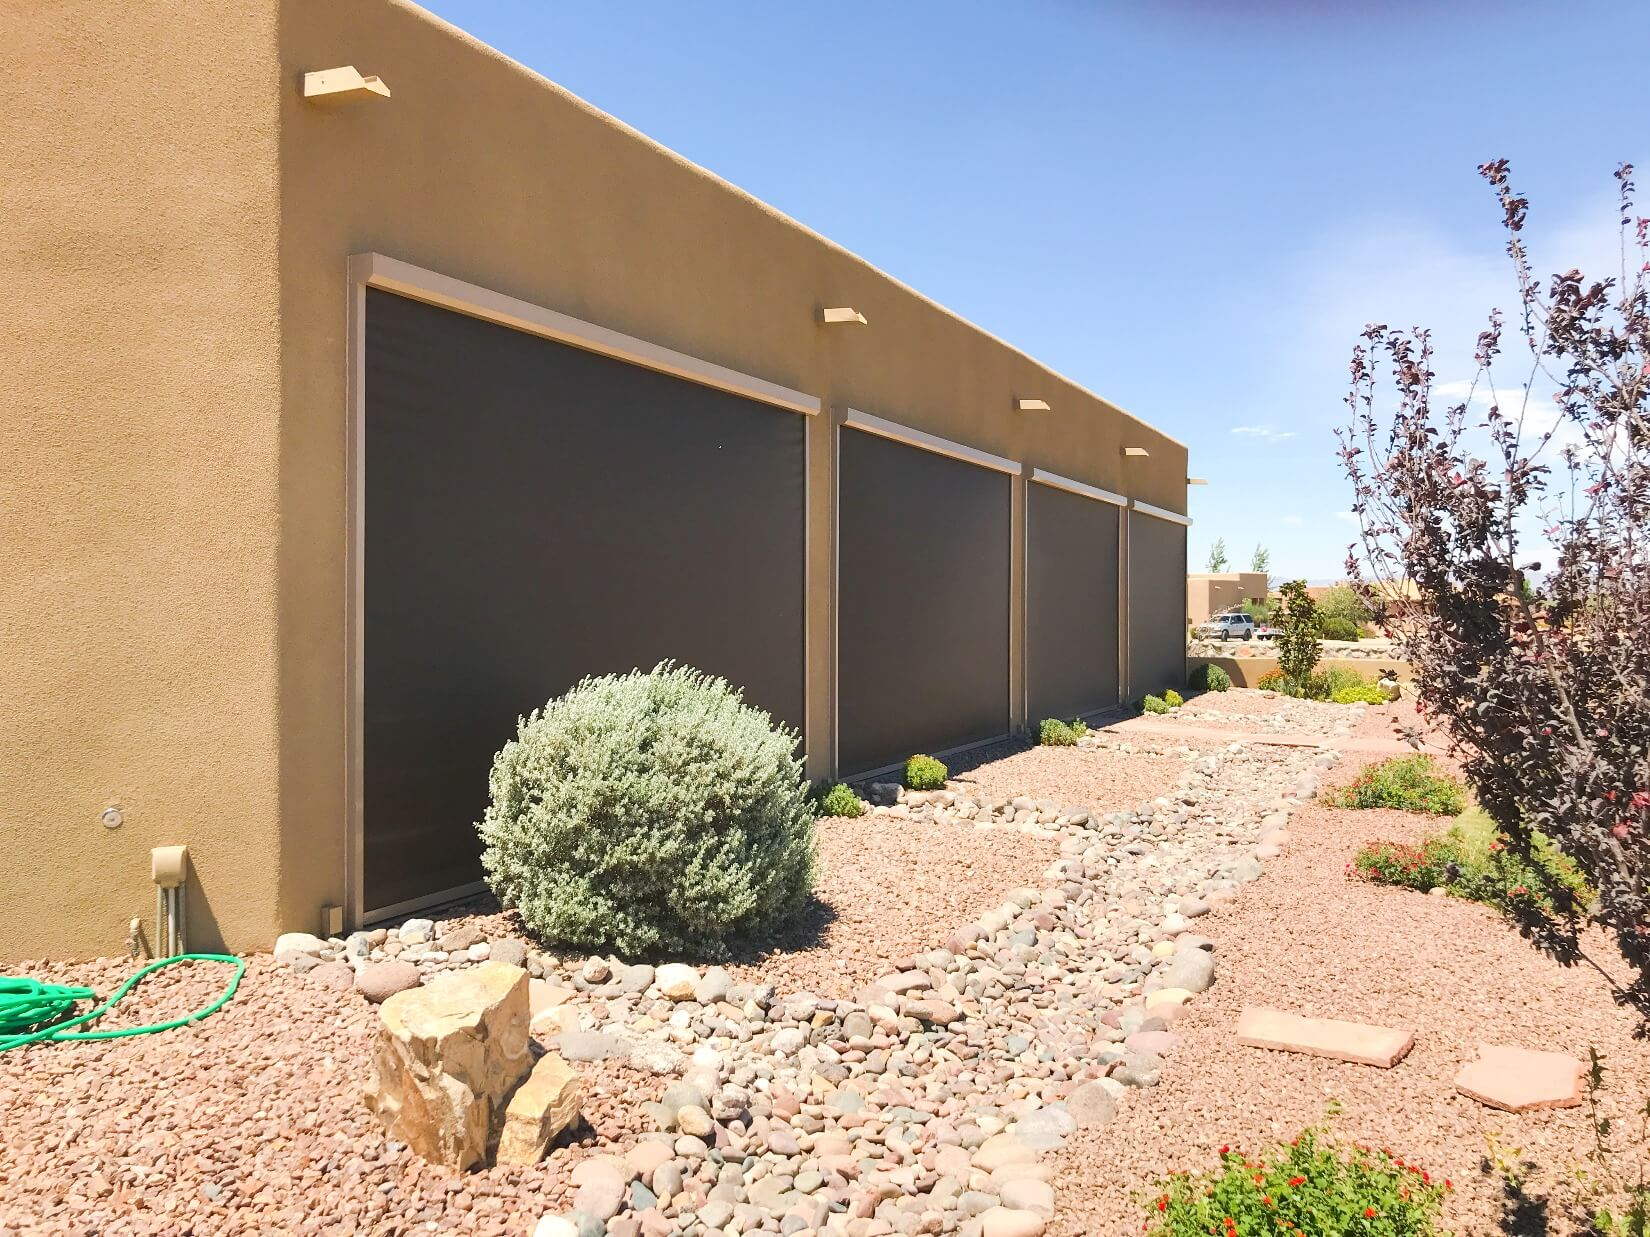 El Paso Texas residential retractable shade screens by Southwestern Home Products